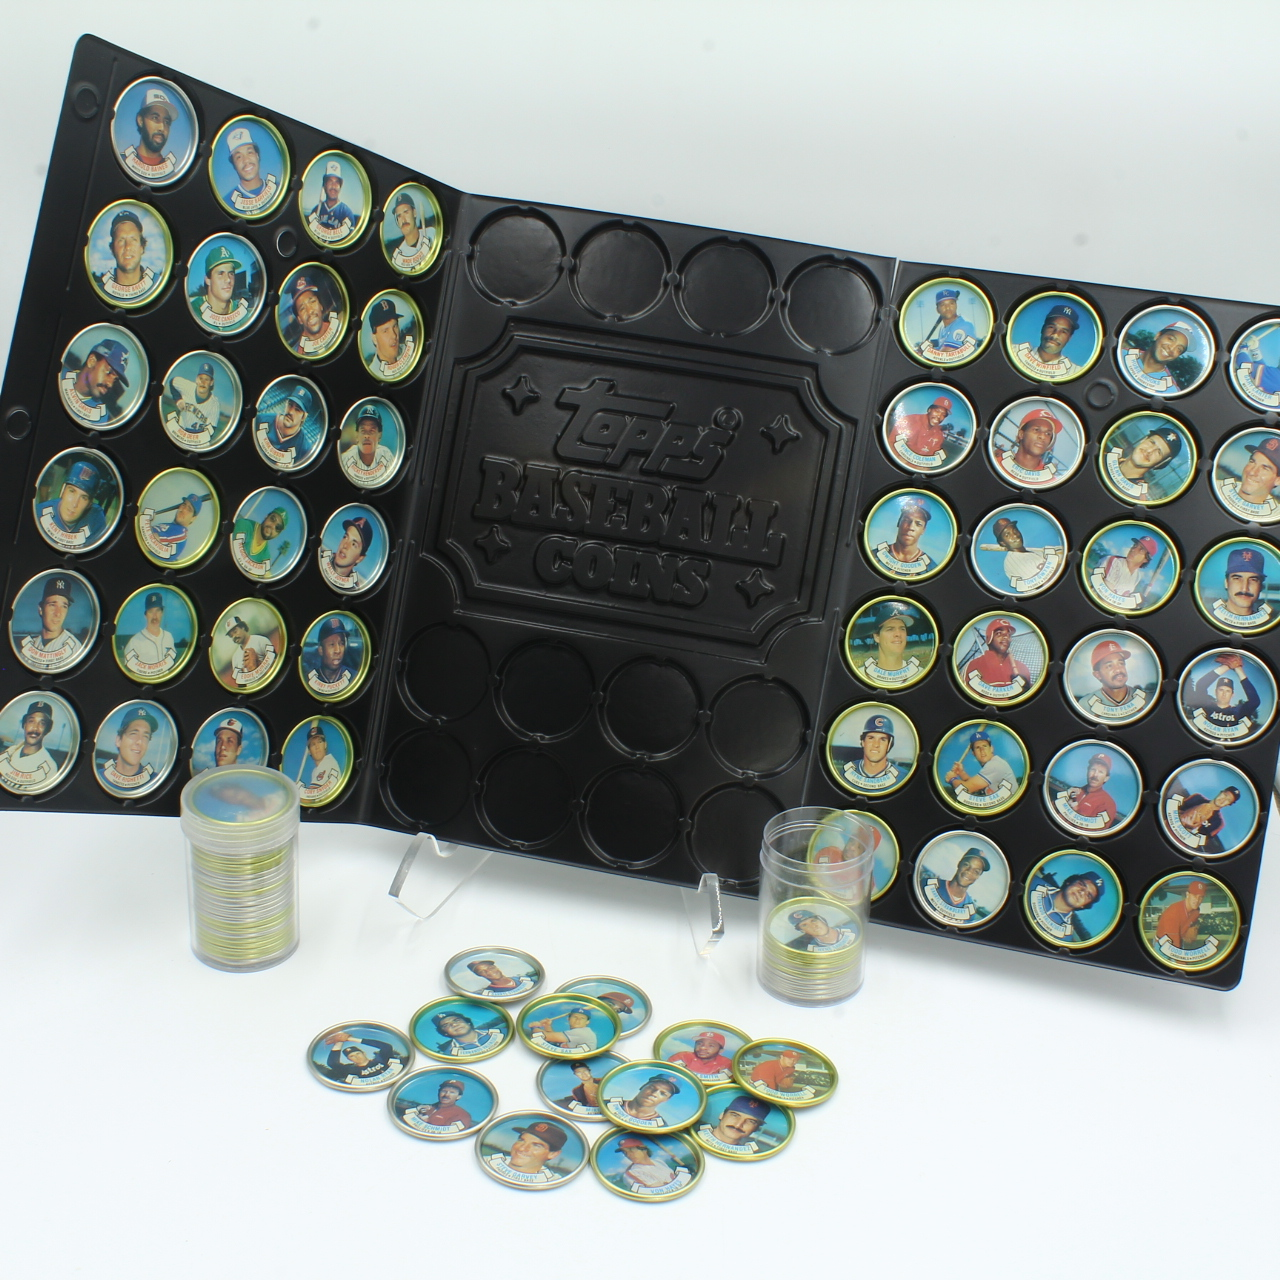 C. 1980s-90s Topps Coin Case, Appx 96 Coins